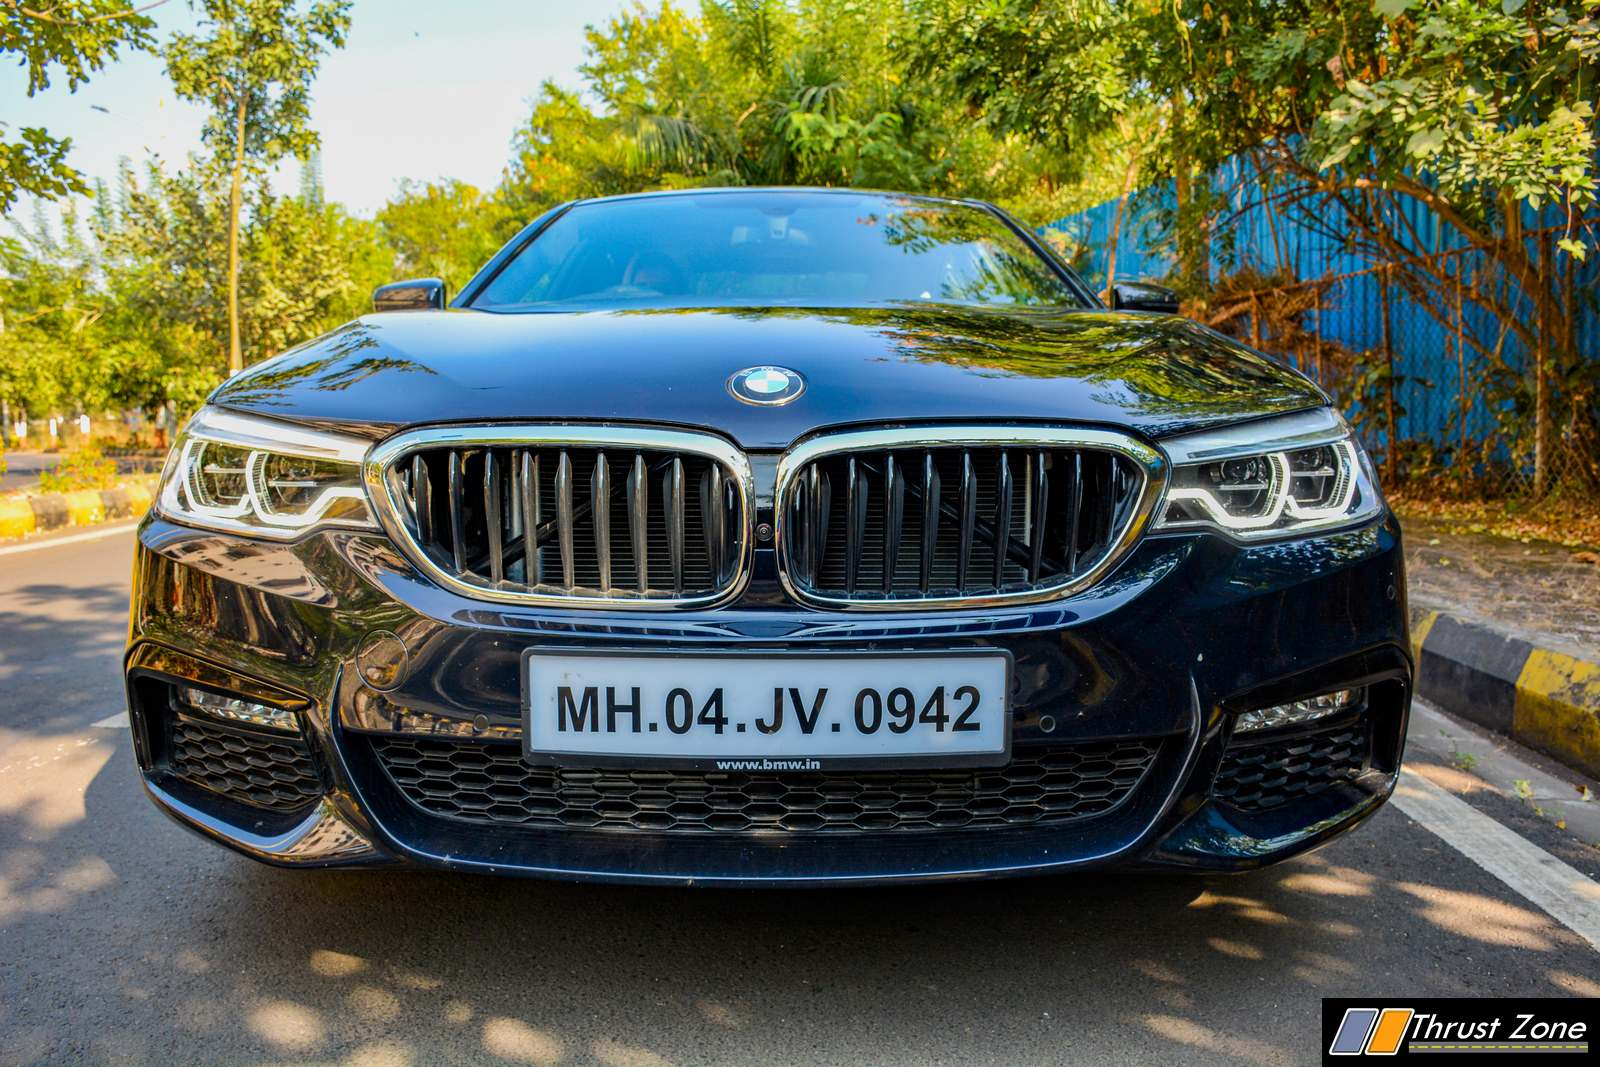 http://www.thrustzone.com/wp-content/uploads/2019/01/2018-BMW-530d-India-Review-11.jpg